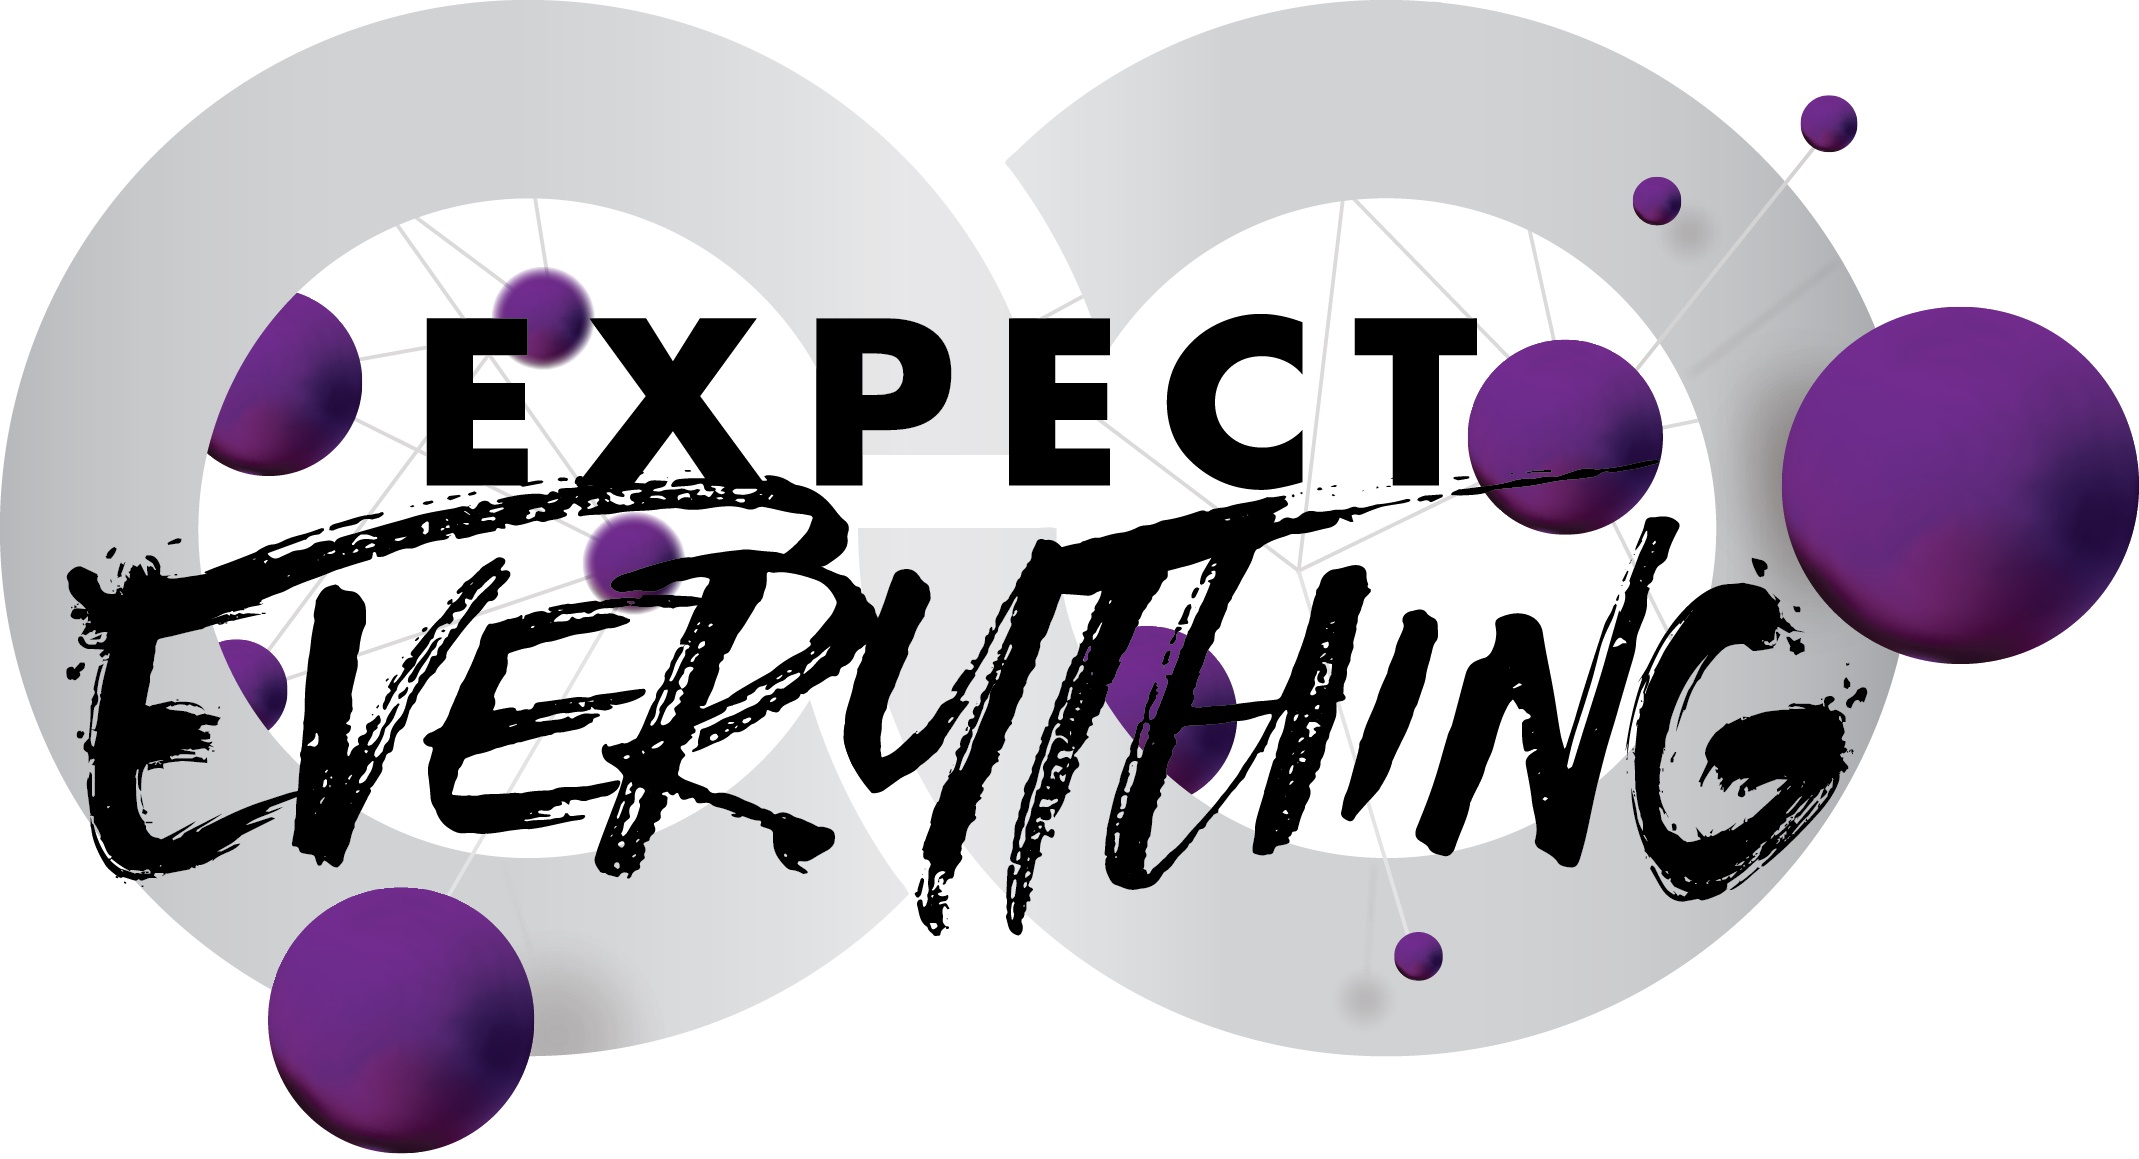 Expect Everything